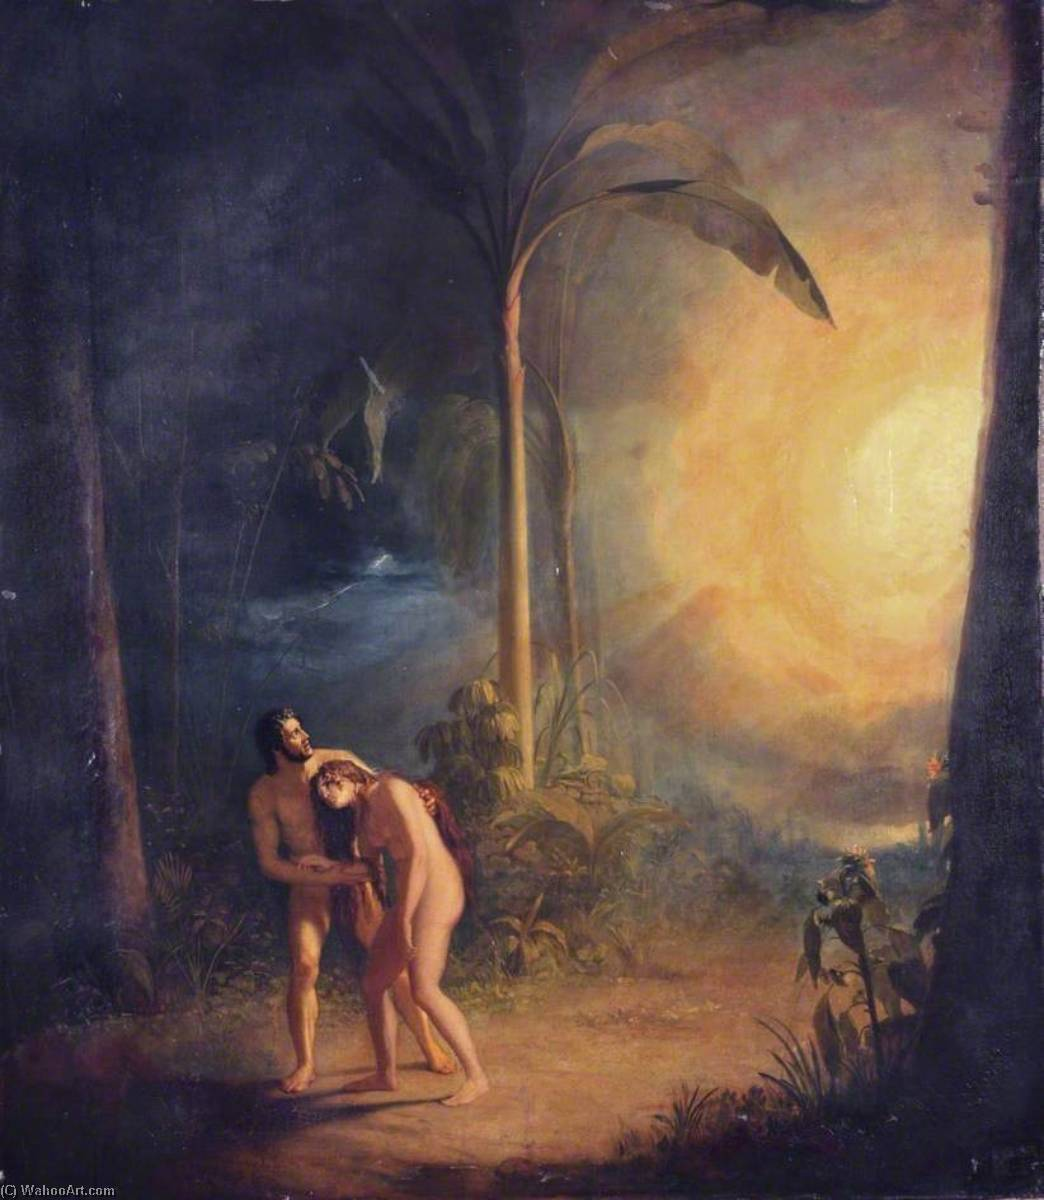 Alexander-Mosses-The-Expulsion-of-Adam-and-Eve.jpg